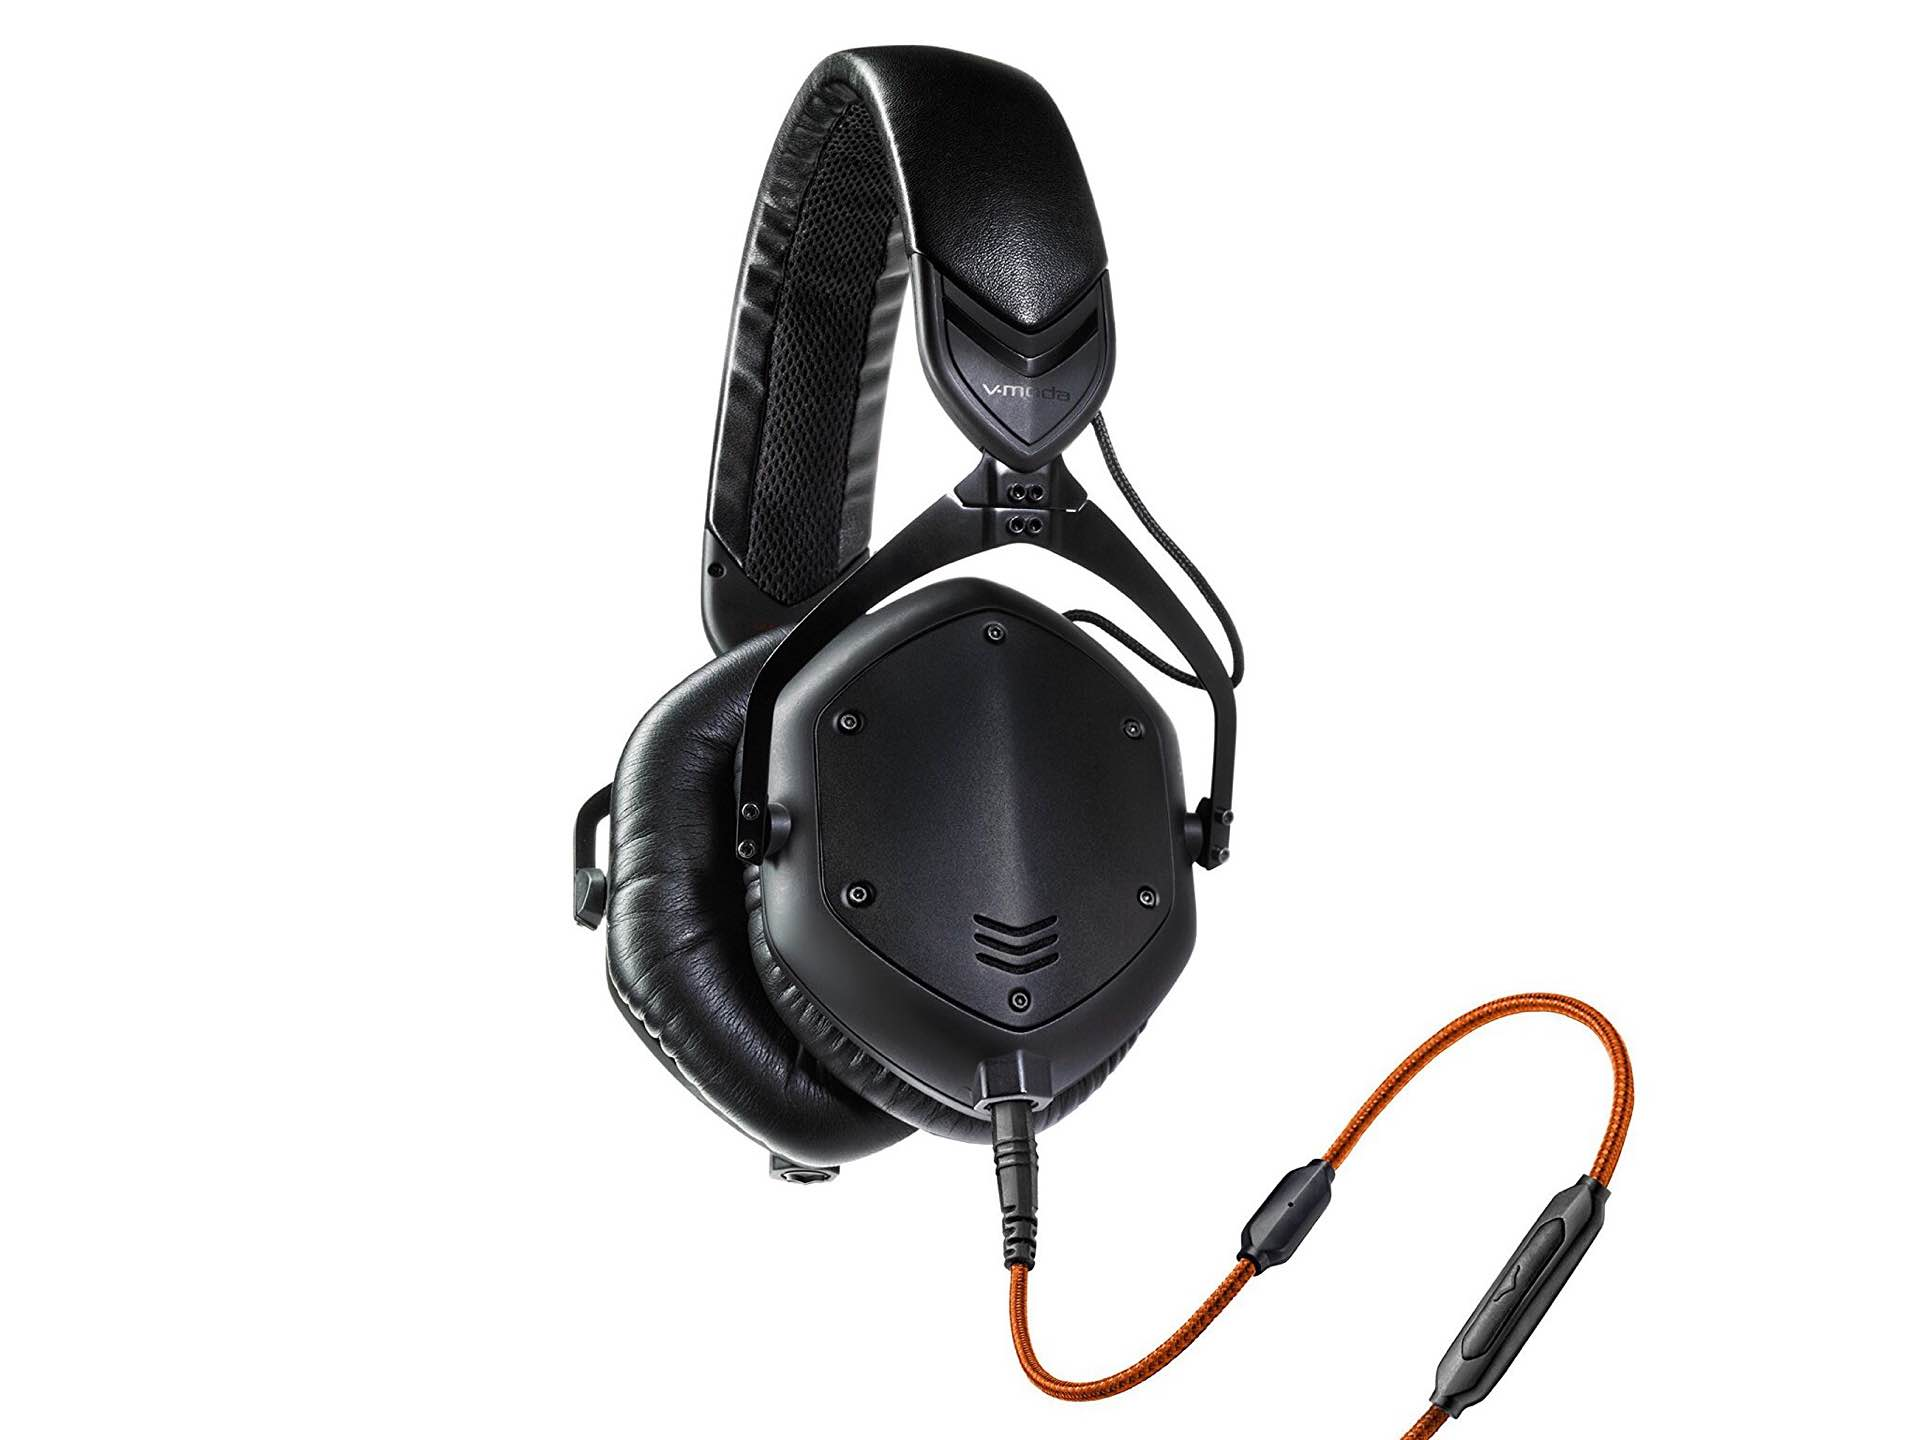 V-Moda Crossfade M-100 noise-isolating headphones. ($249)